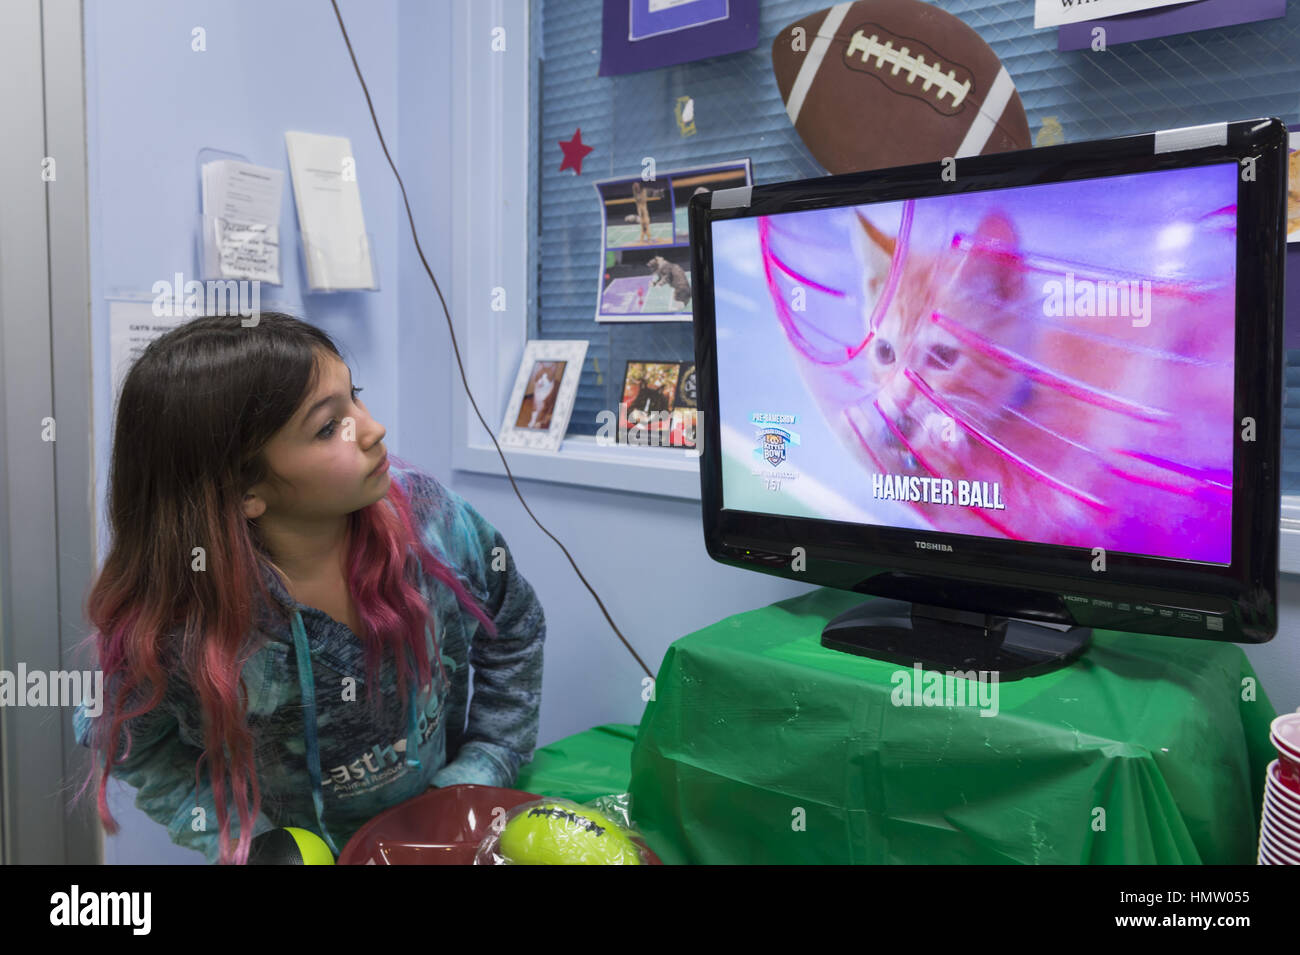 Wantagh, USA. 5th Feb, 2017. Suzanne Ferrara, 10, of Plainview, watches kitten playing in pink Hamster Ball on television - Stock Image